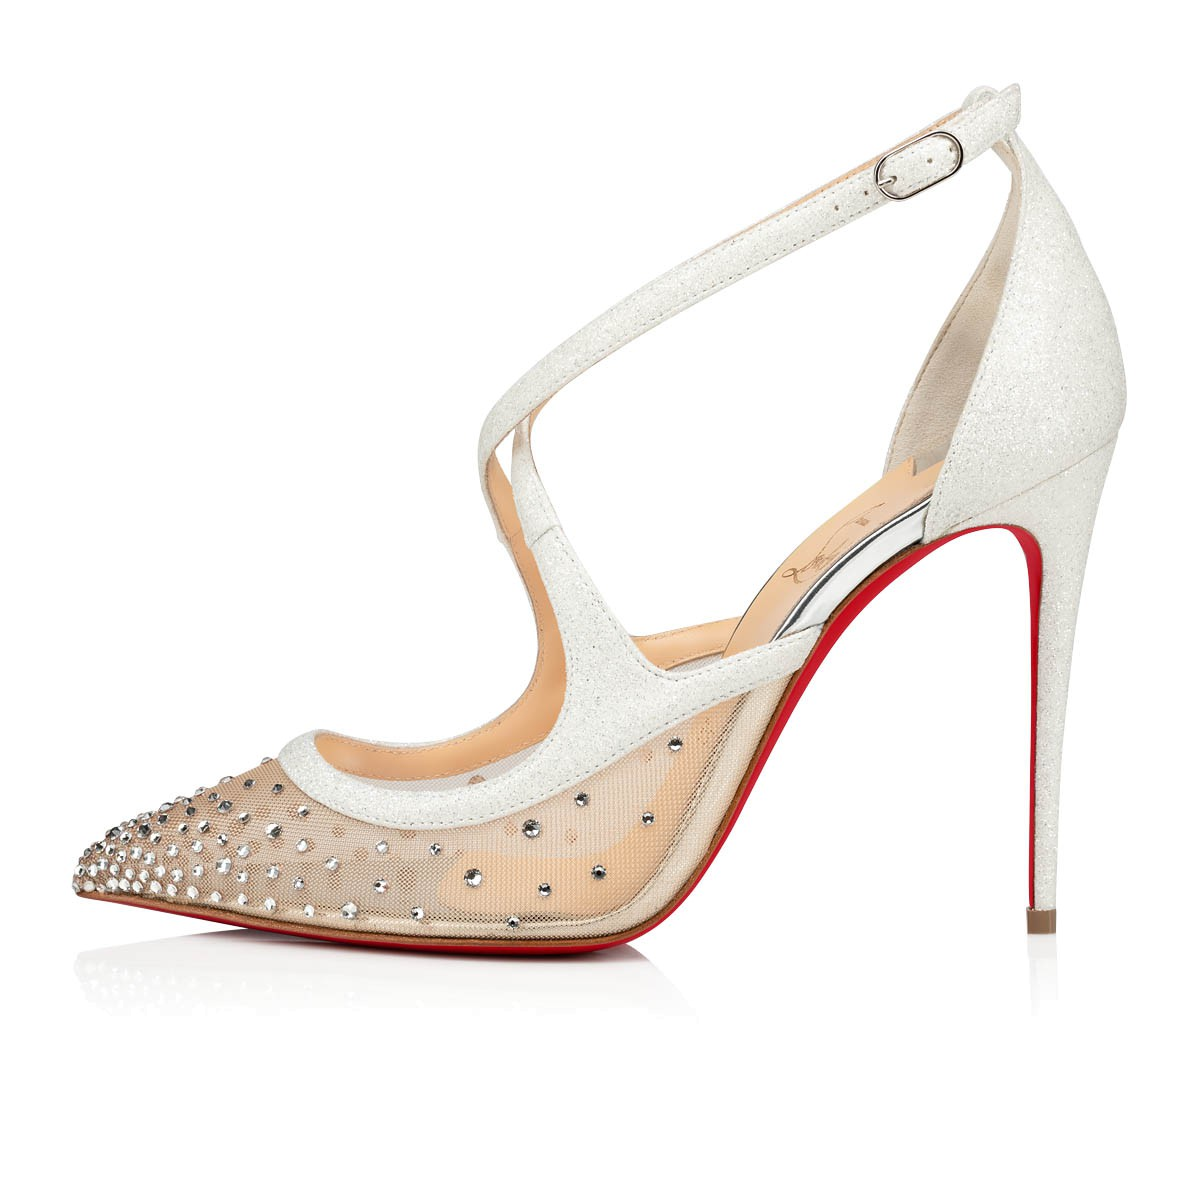 los angeles 8c755 4a9d1 TWISTISSIMA STRASS 100 Crystal Glitter - Women Shoes - Christian Louboutin